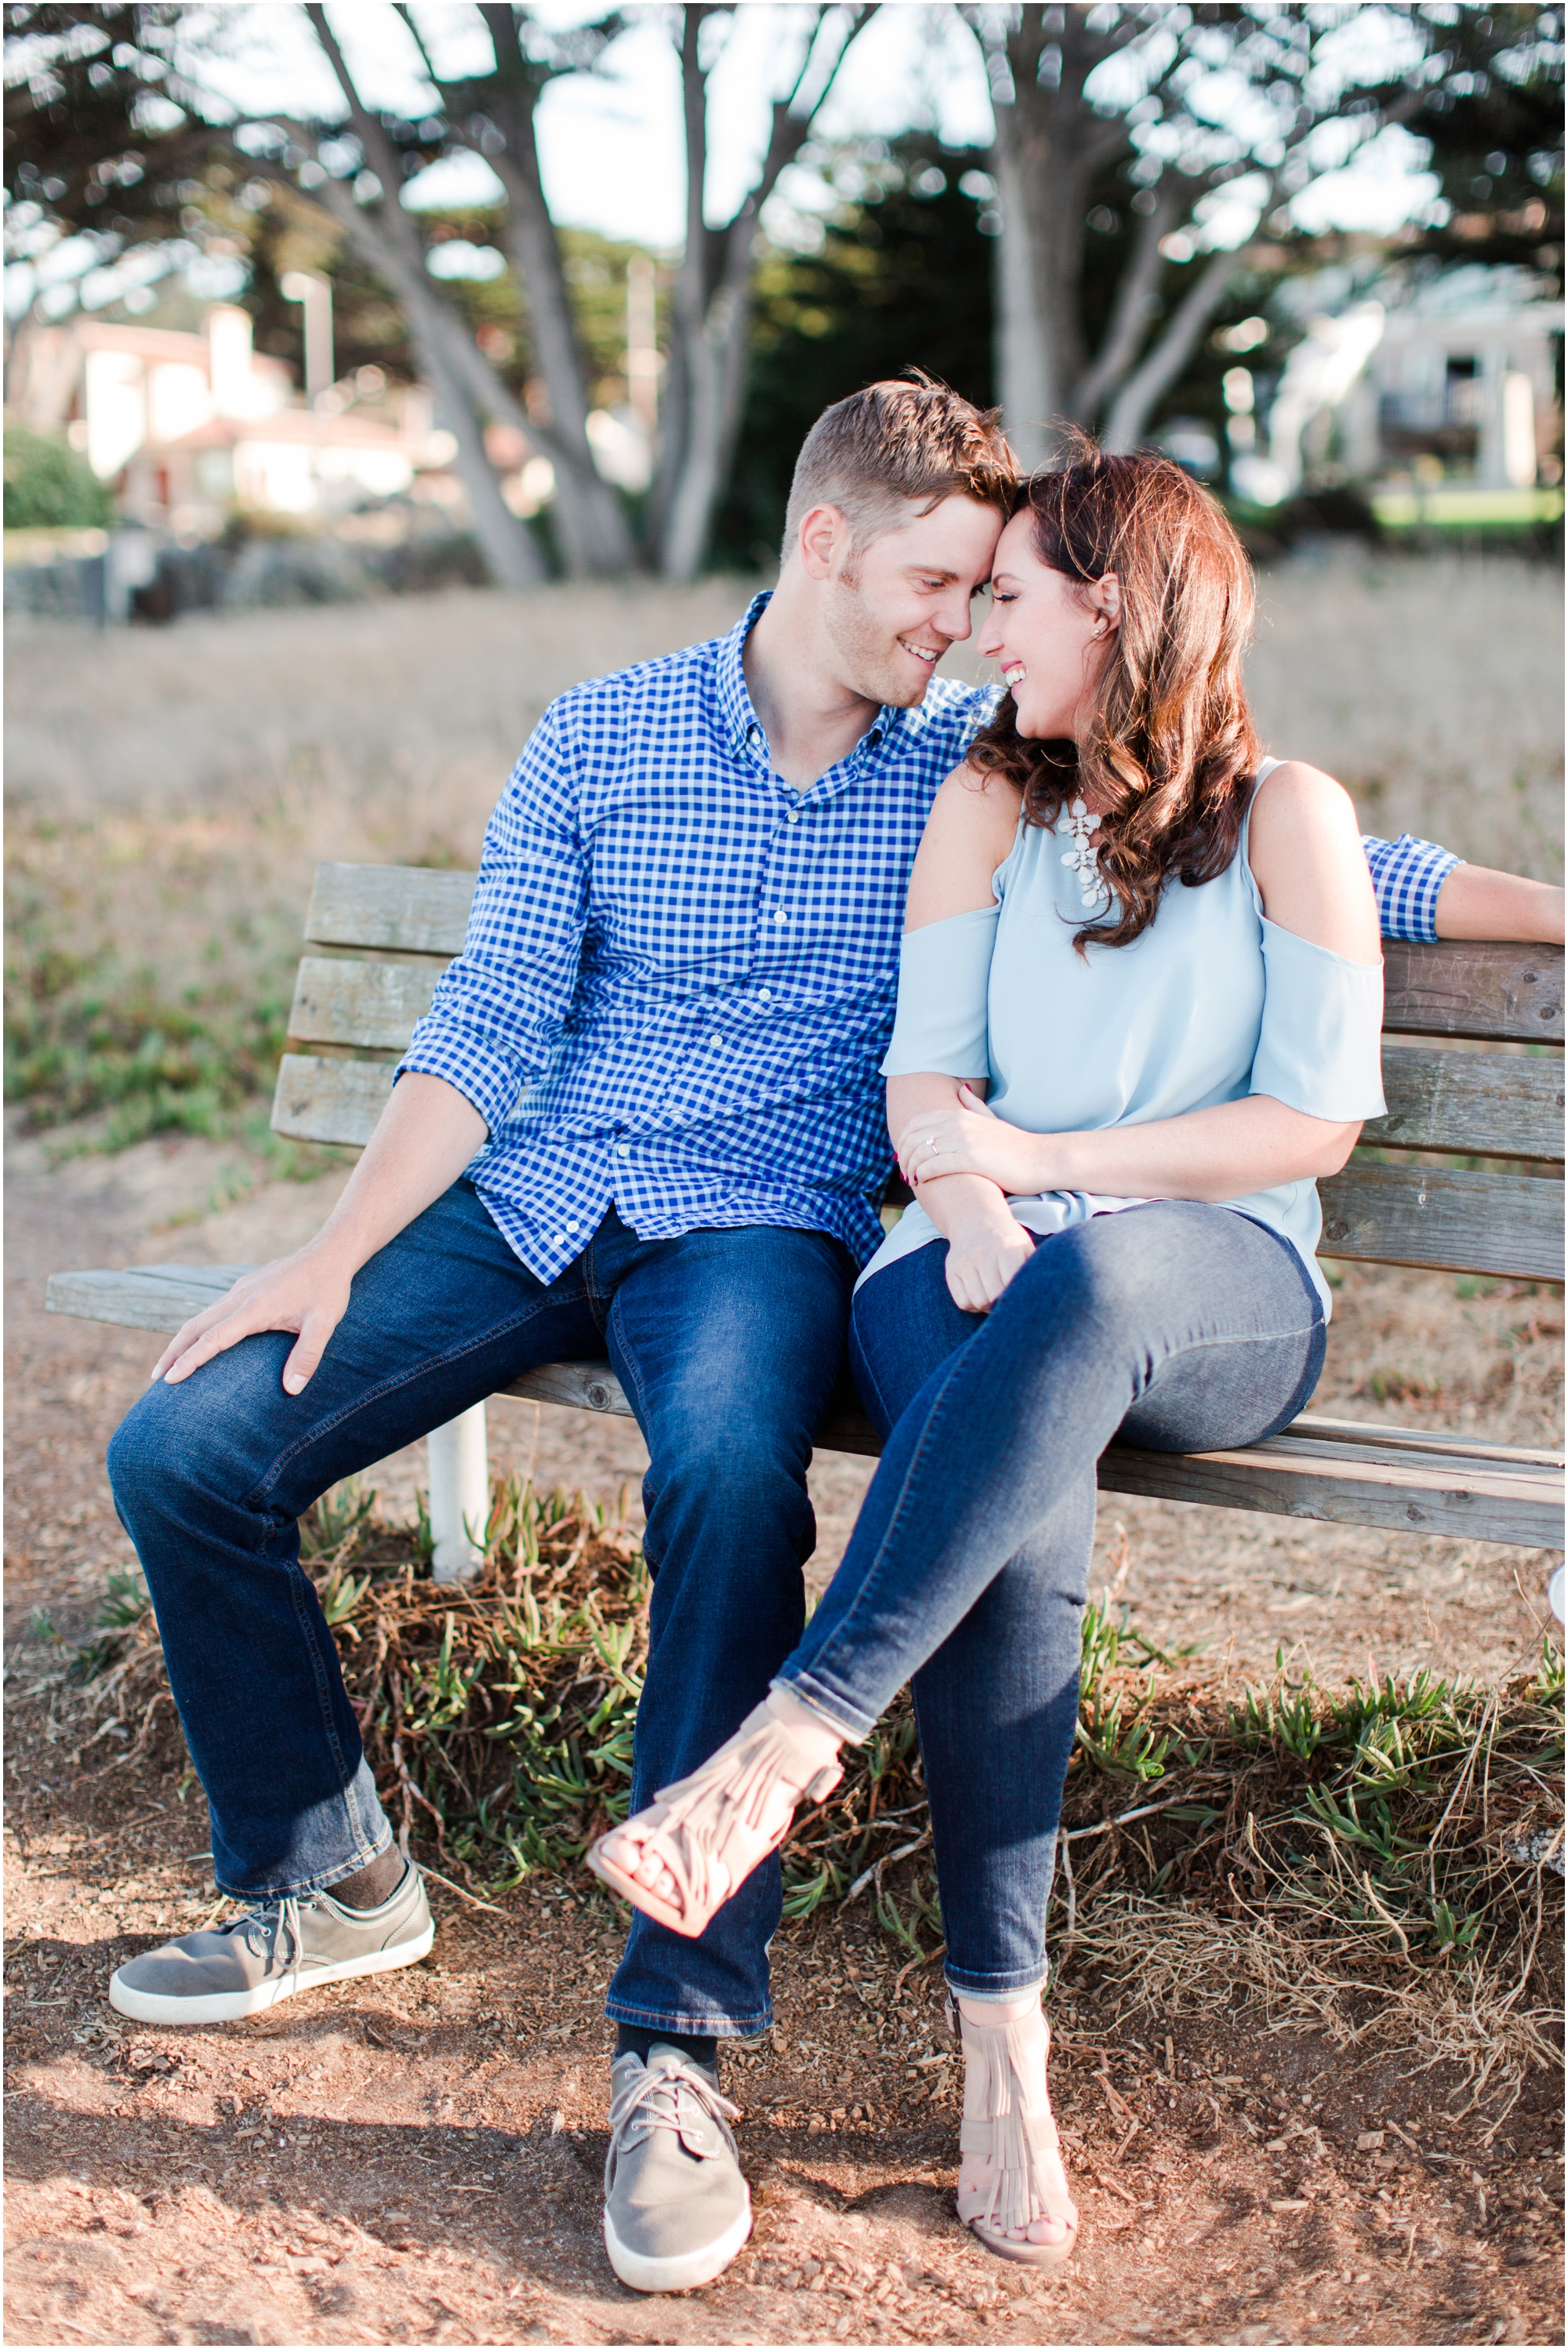 Berwick Park Monterey engagement pictures by Briana Calderon Photography_2372.jpg